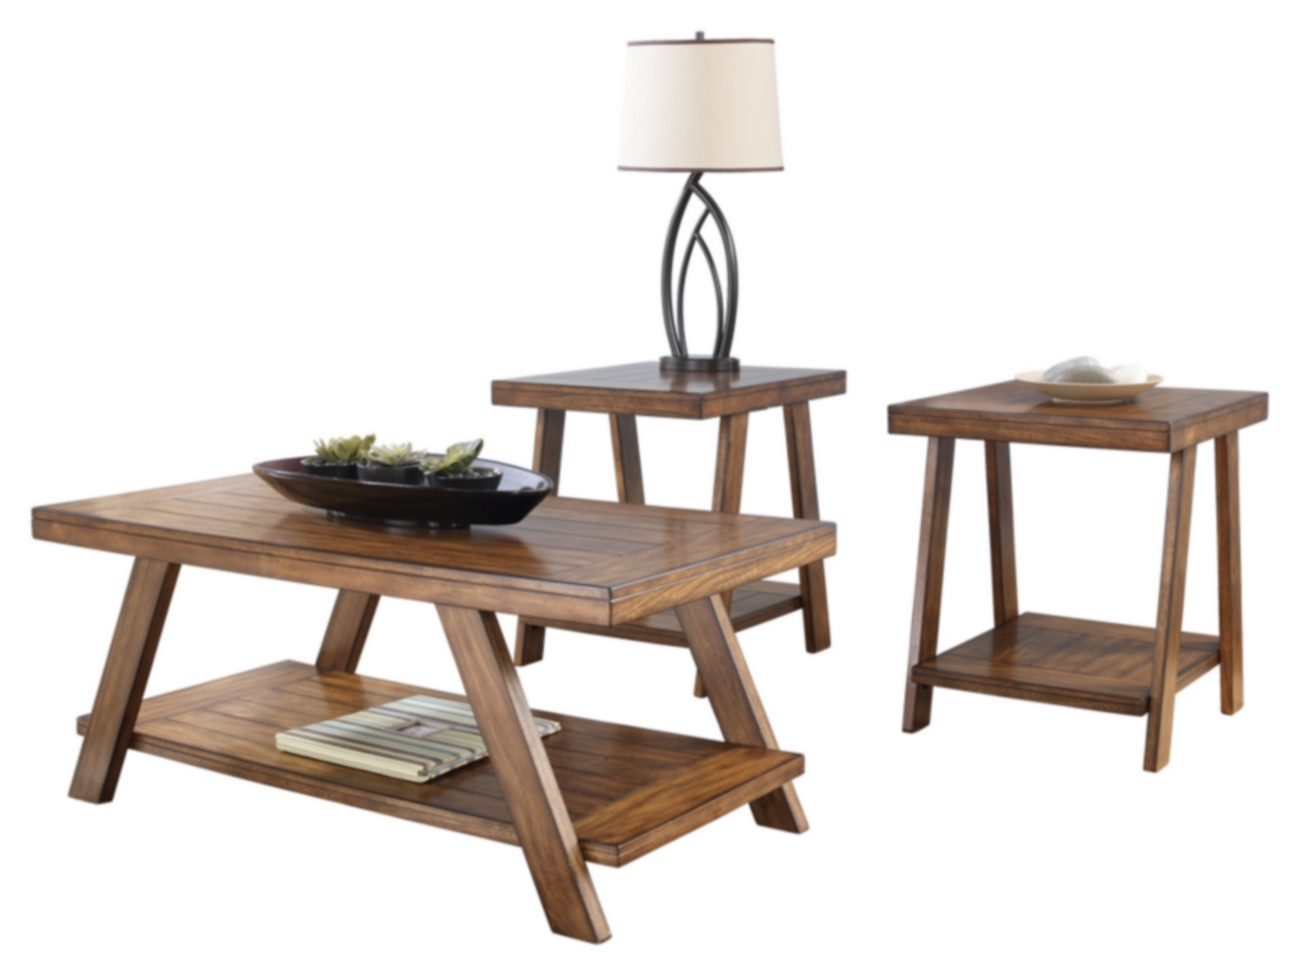 Signature Design Bradley Occasional 3 Pc Table Set Ashley Furniture T392 13